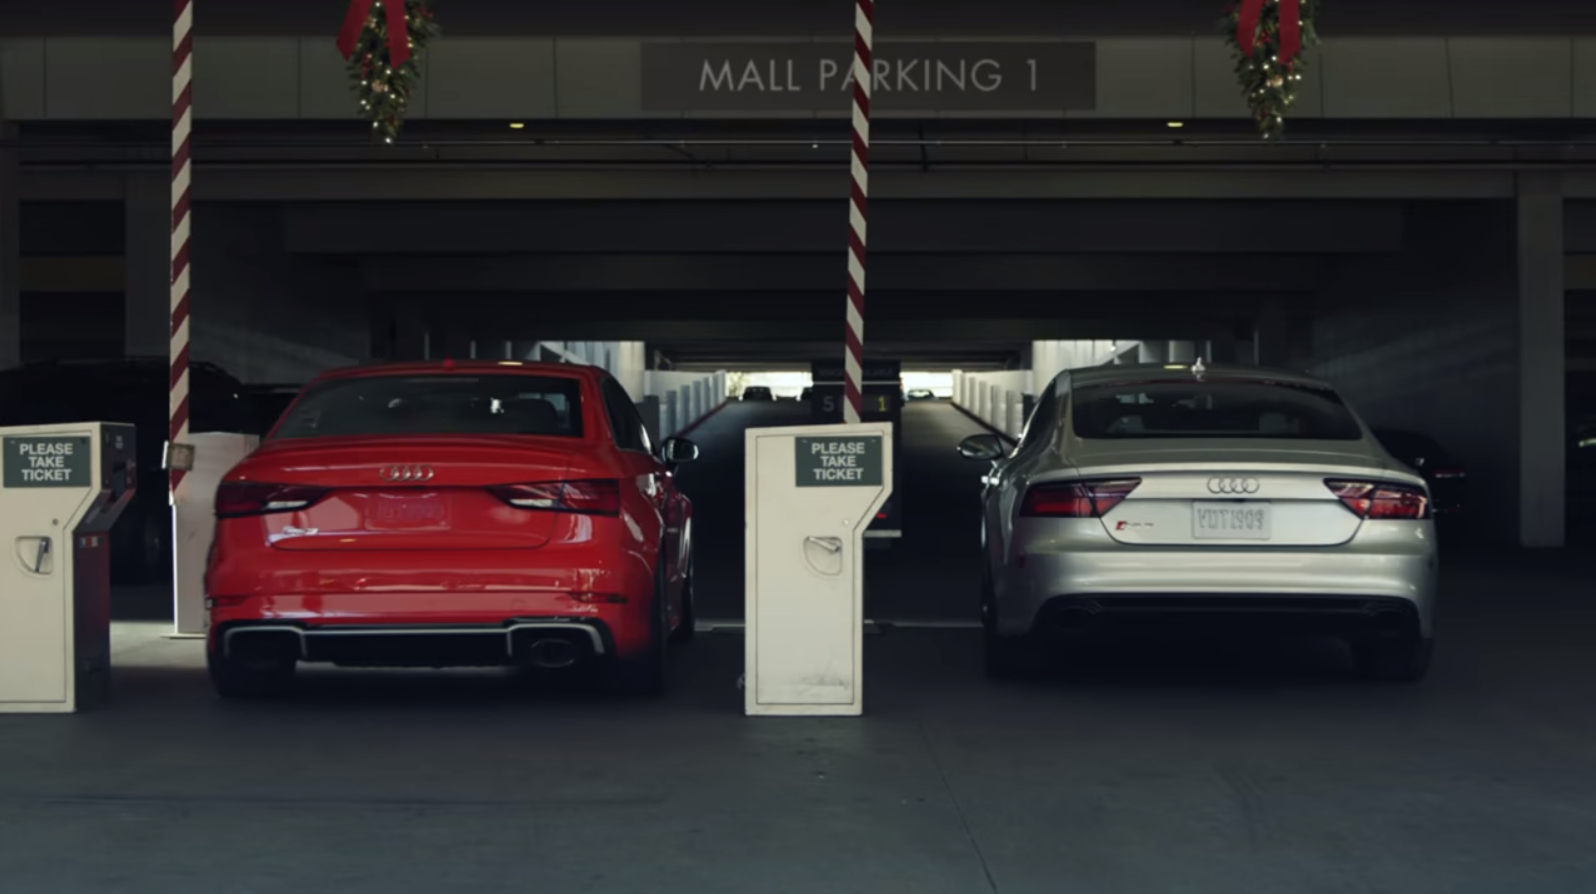 Audi Revs Up Its Holiday Campaign With Two Dads Racing To Get The - Audi car lot